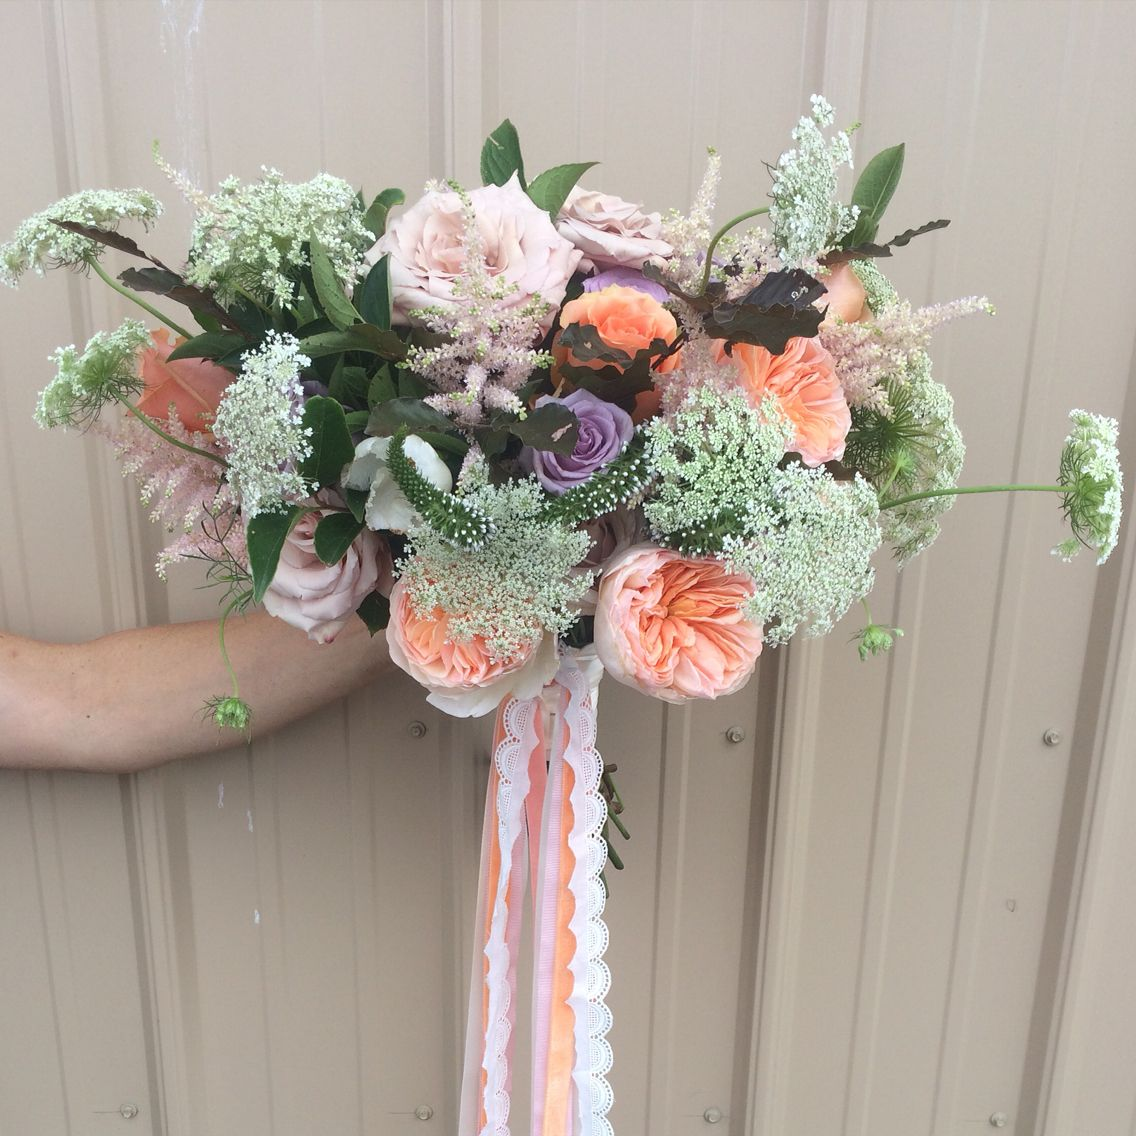 Julia's Bouquet, By Caroline Of Passiflora. 2015 (With